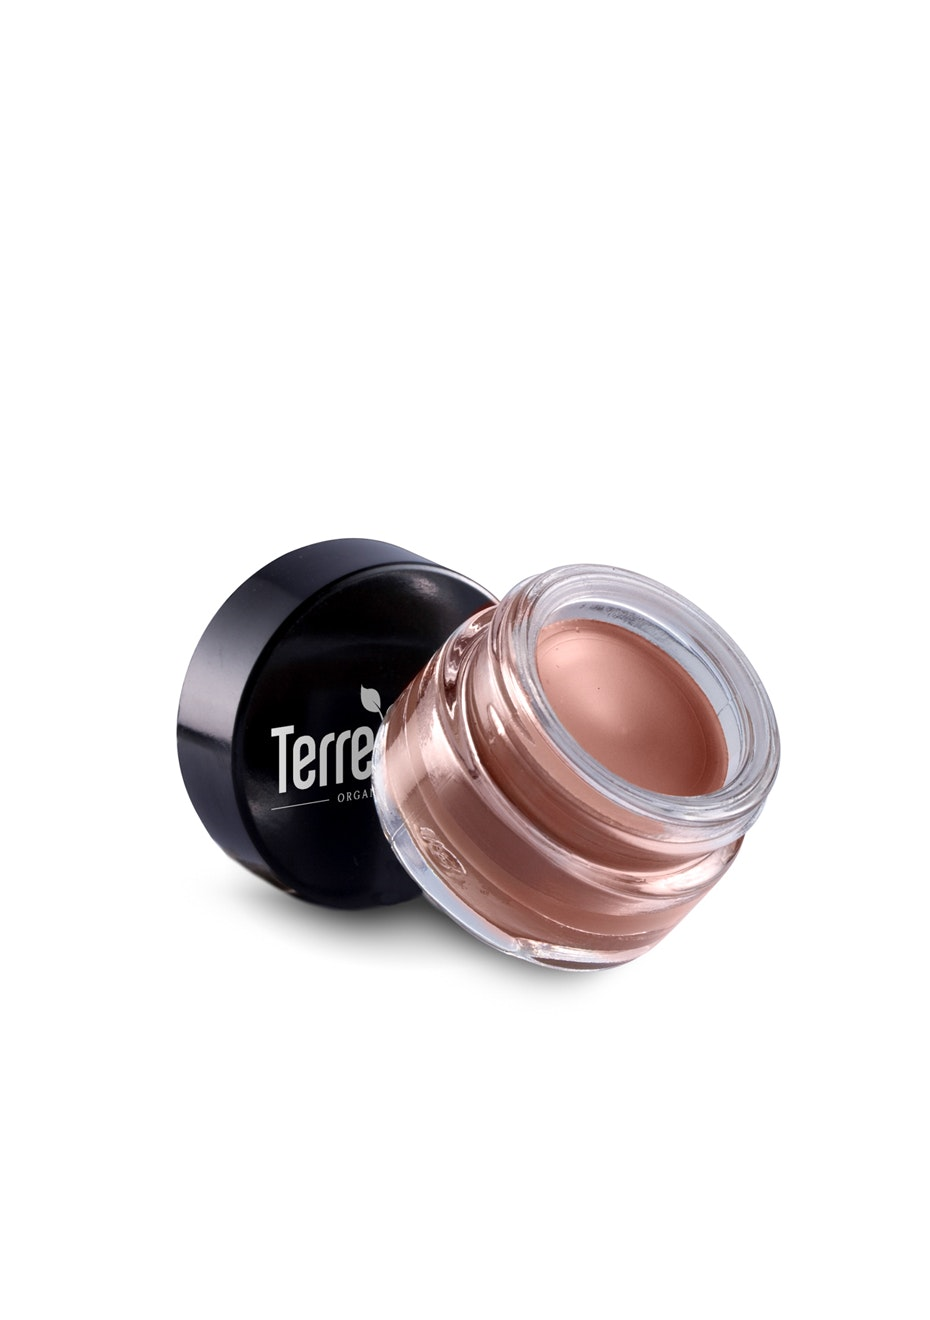 Terre Mere - Indelible Gel Brow - Cool Taupe